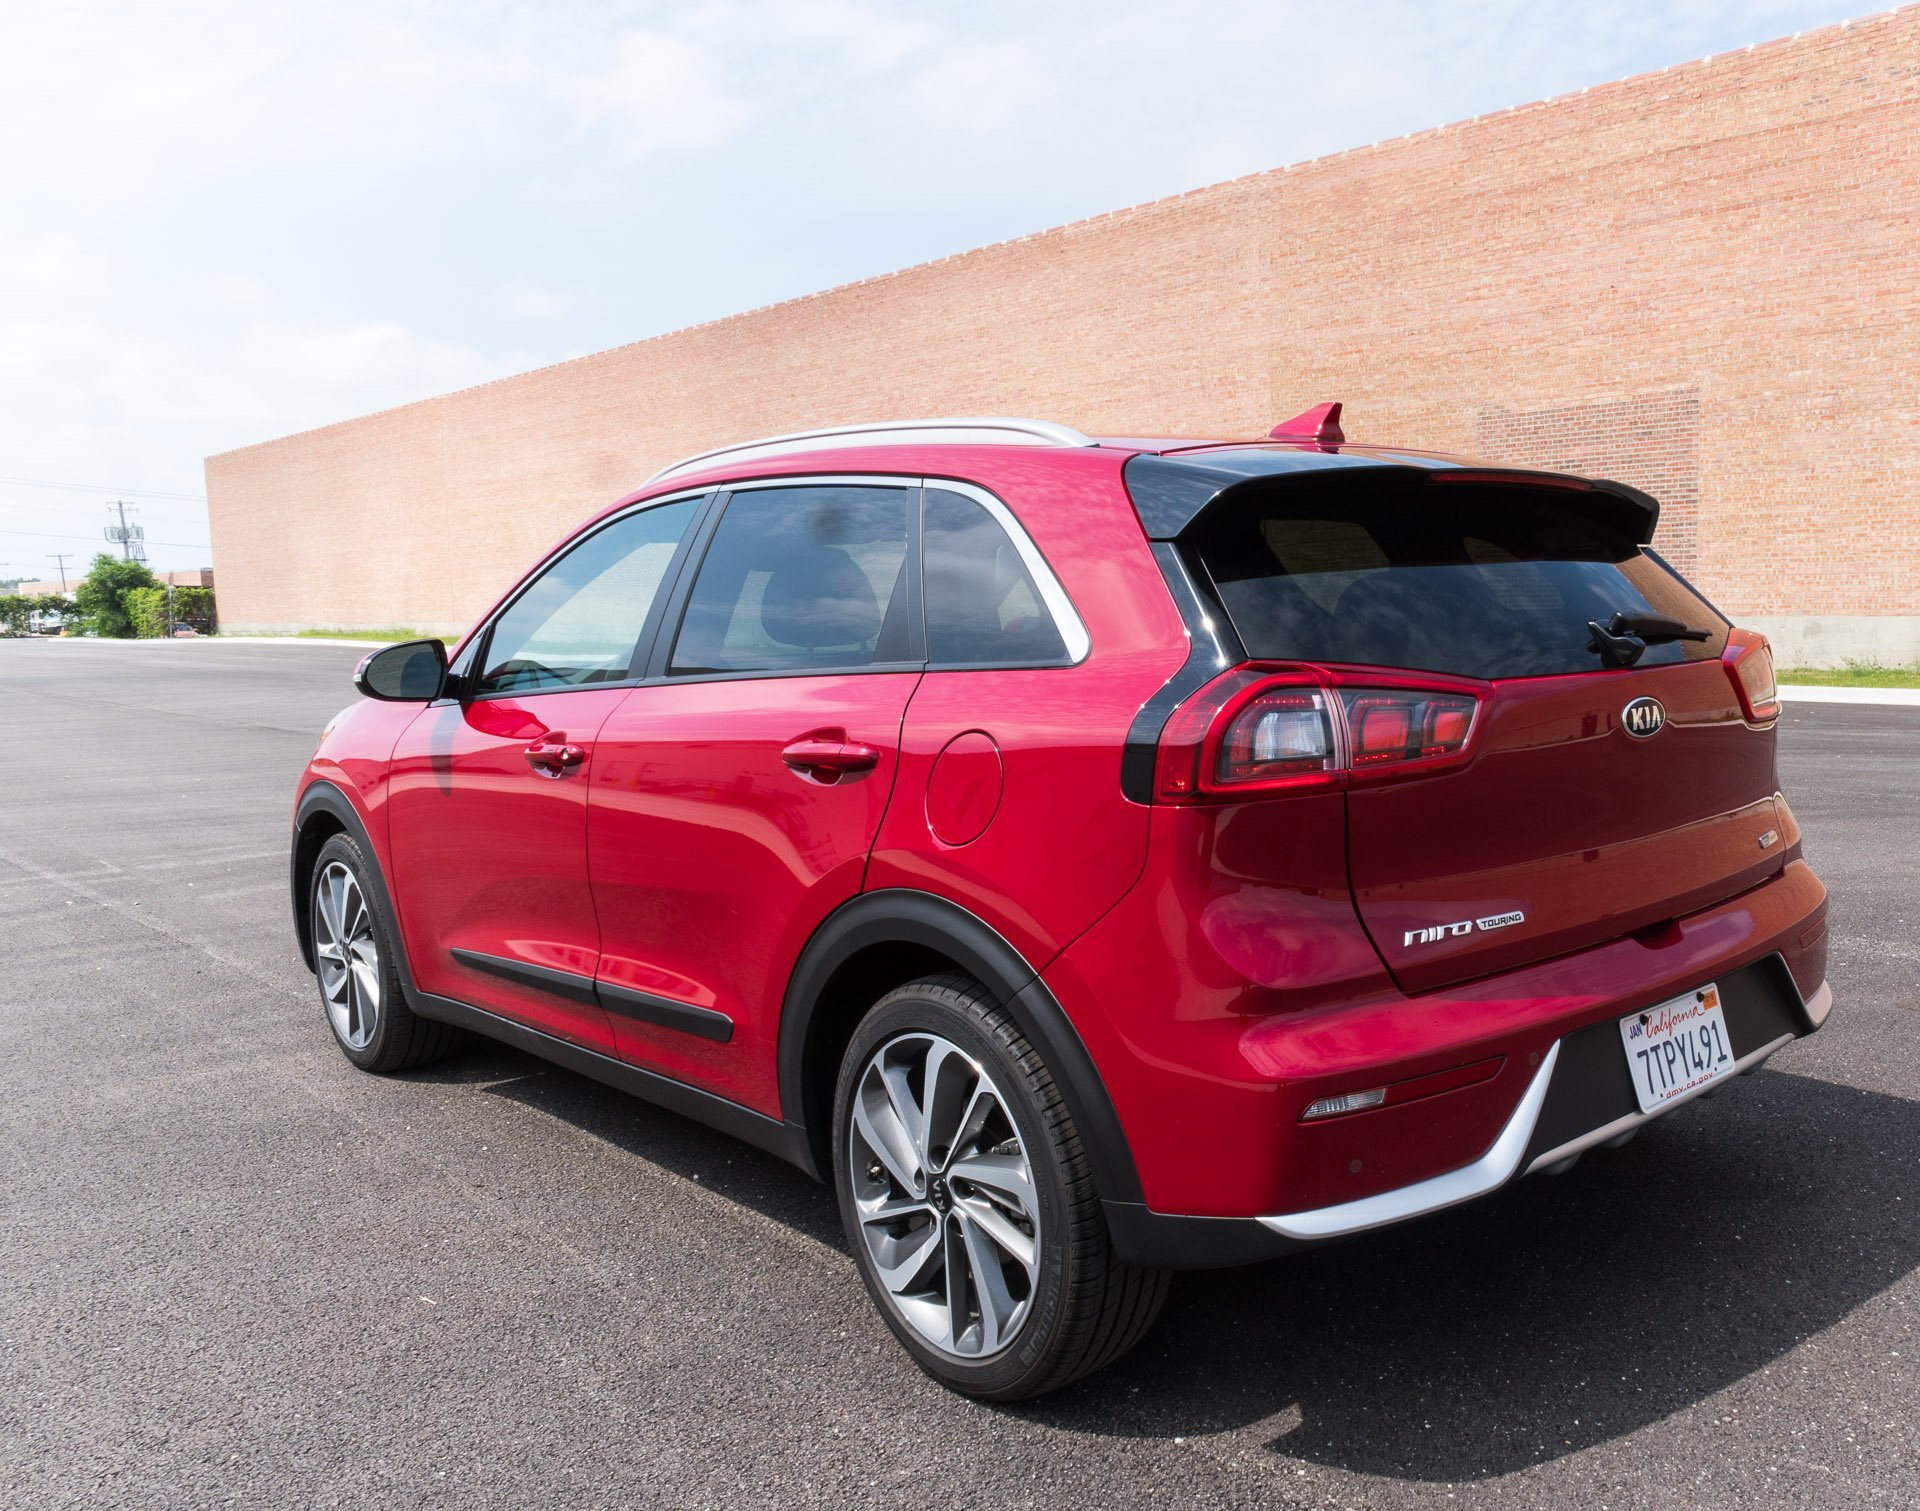 2017 kia niro touring review a wagon by any other name 2017 kia niro touring review a wagon by any other name